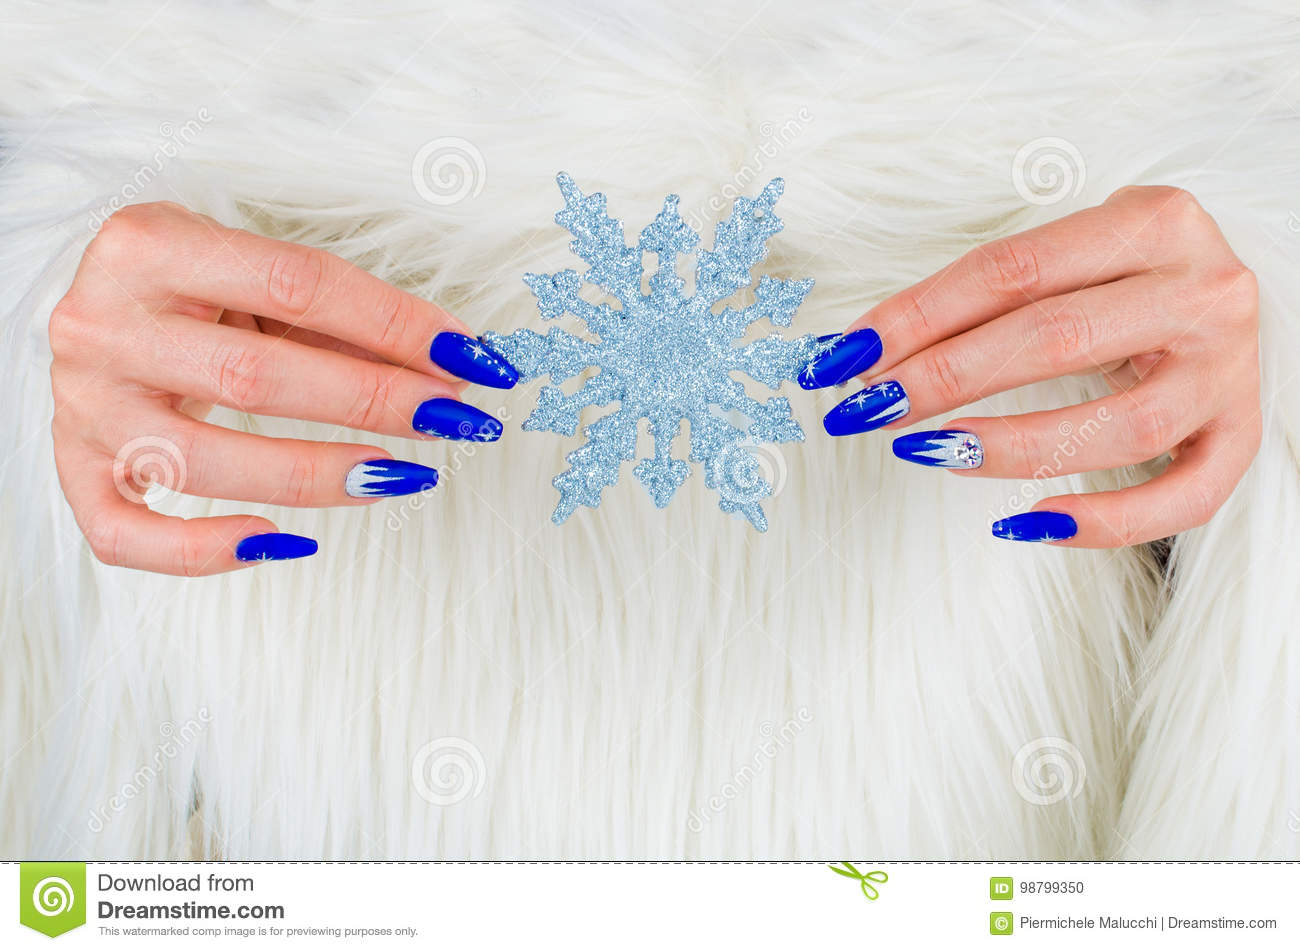 beautiful nail decorations for your christmas and new year parties stock photo image of light elsa 98799350 https www dreamstime com stock photo beautiful nail decorations your christmas new year parti nails decorated blue color bright stars to celebrate image98799350